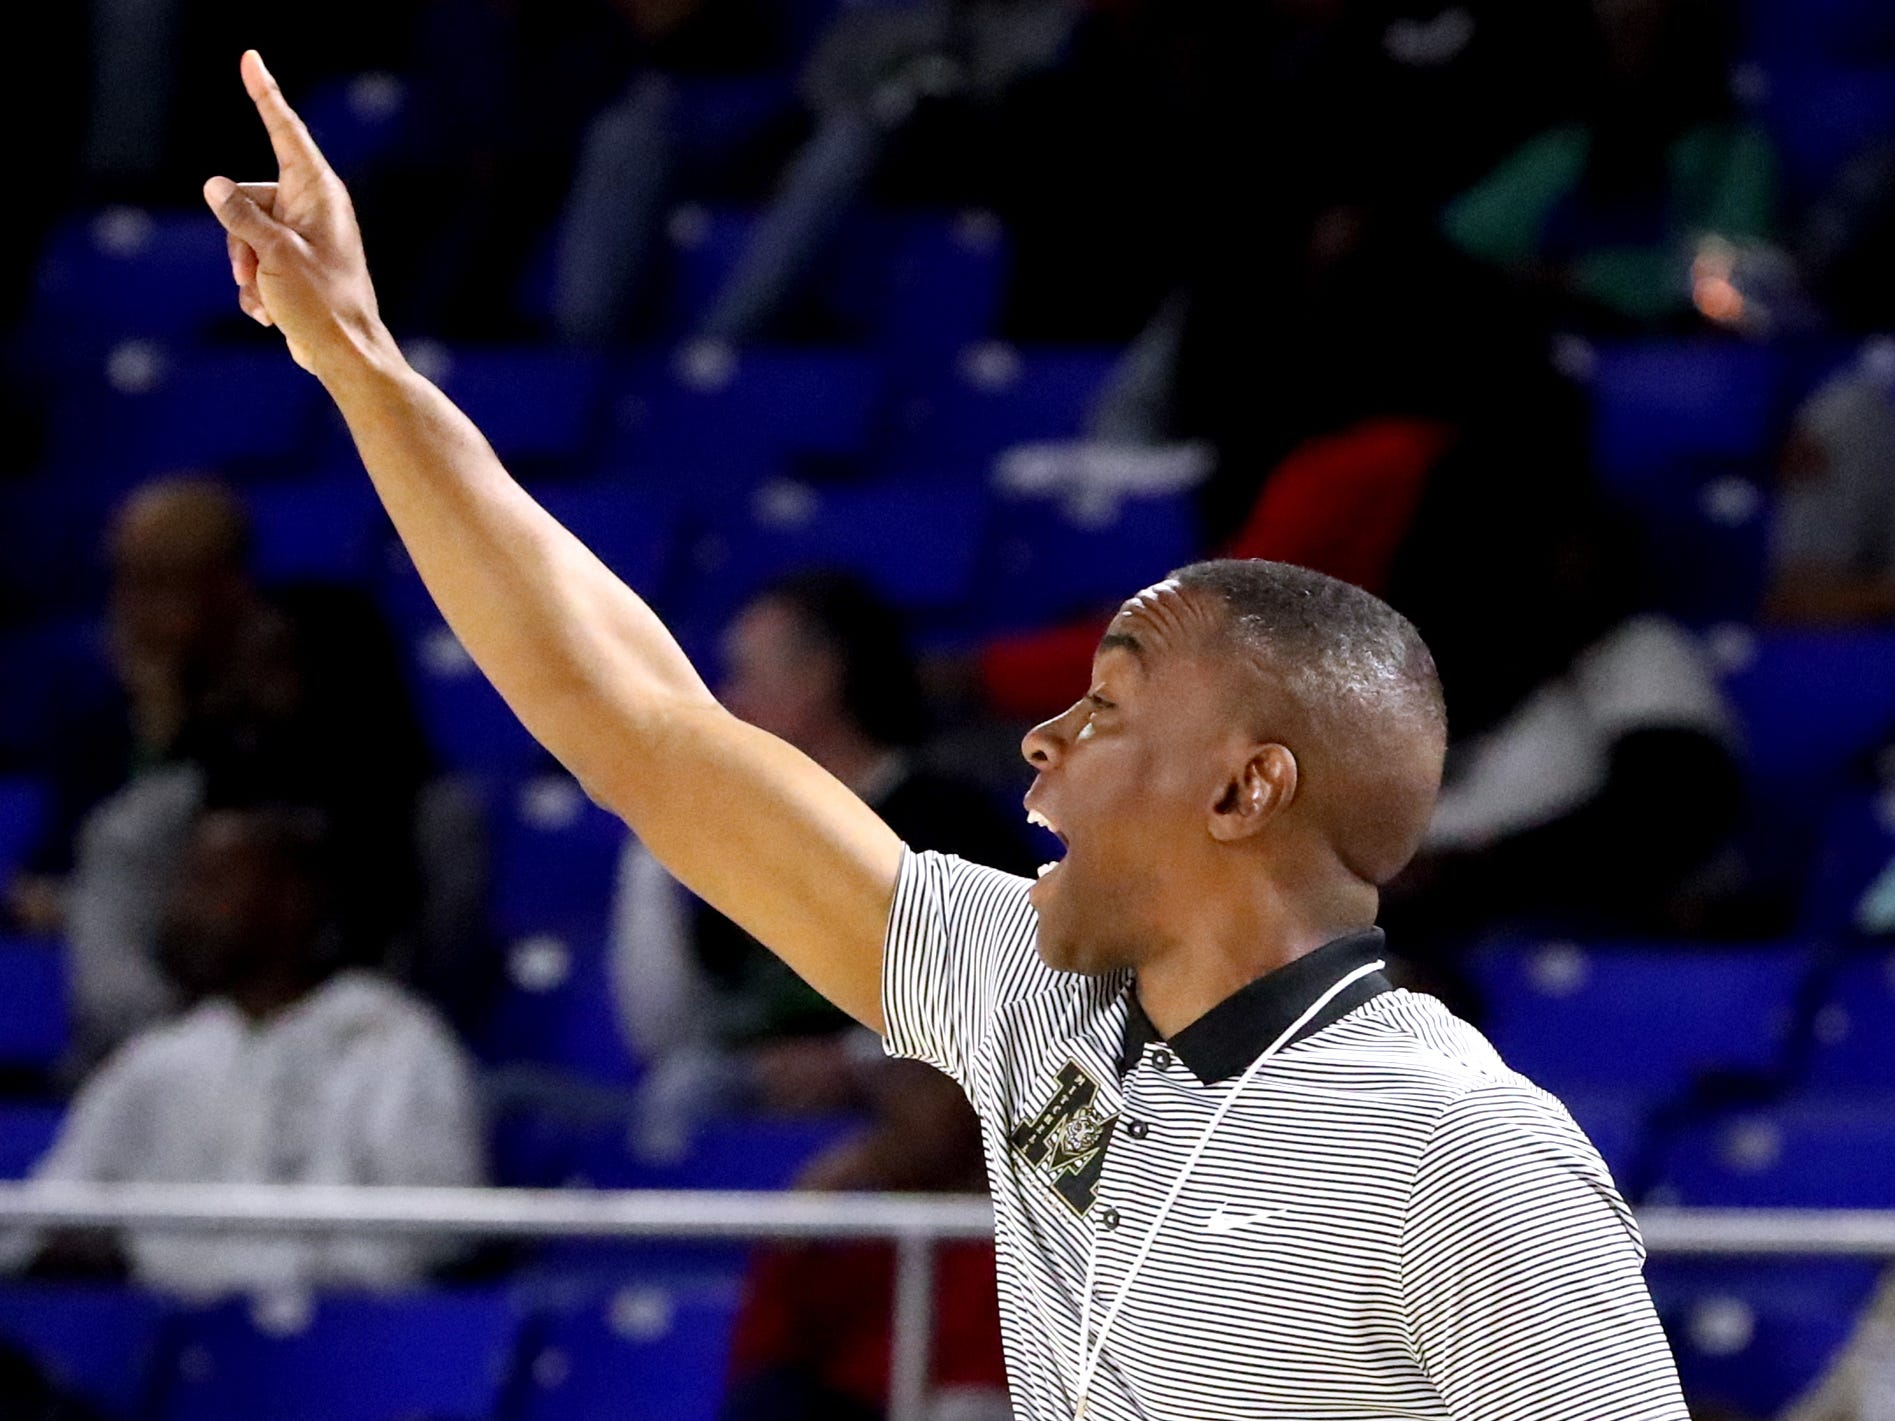 Mitchell's head coach Andre Turner on the sidelines during the quarterfinal round of the TSSAA Class AA Boys State Tournament against Fulton, on Wednesday, March 13, 2019, at Murphy Center in Murfreesboro, Tenn.